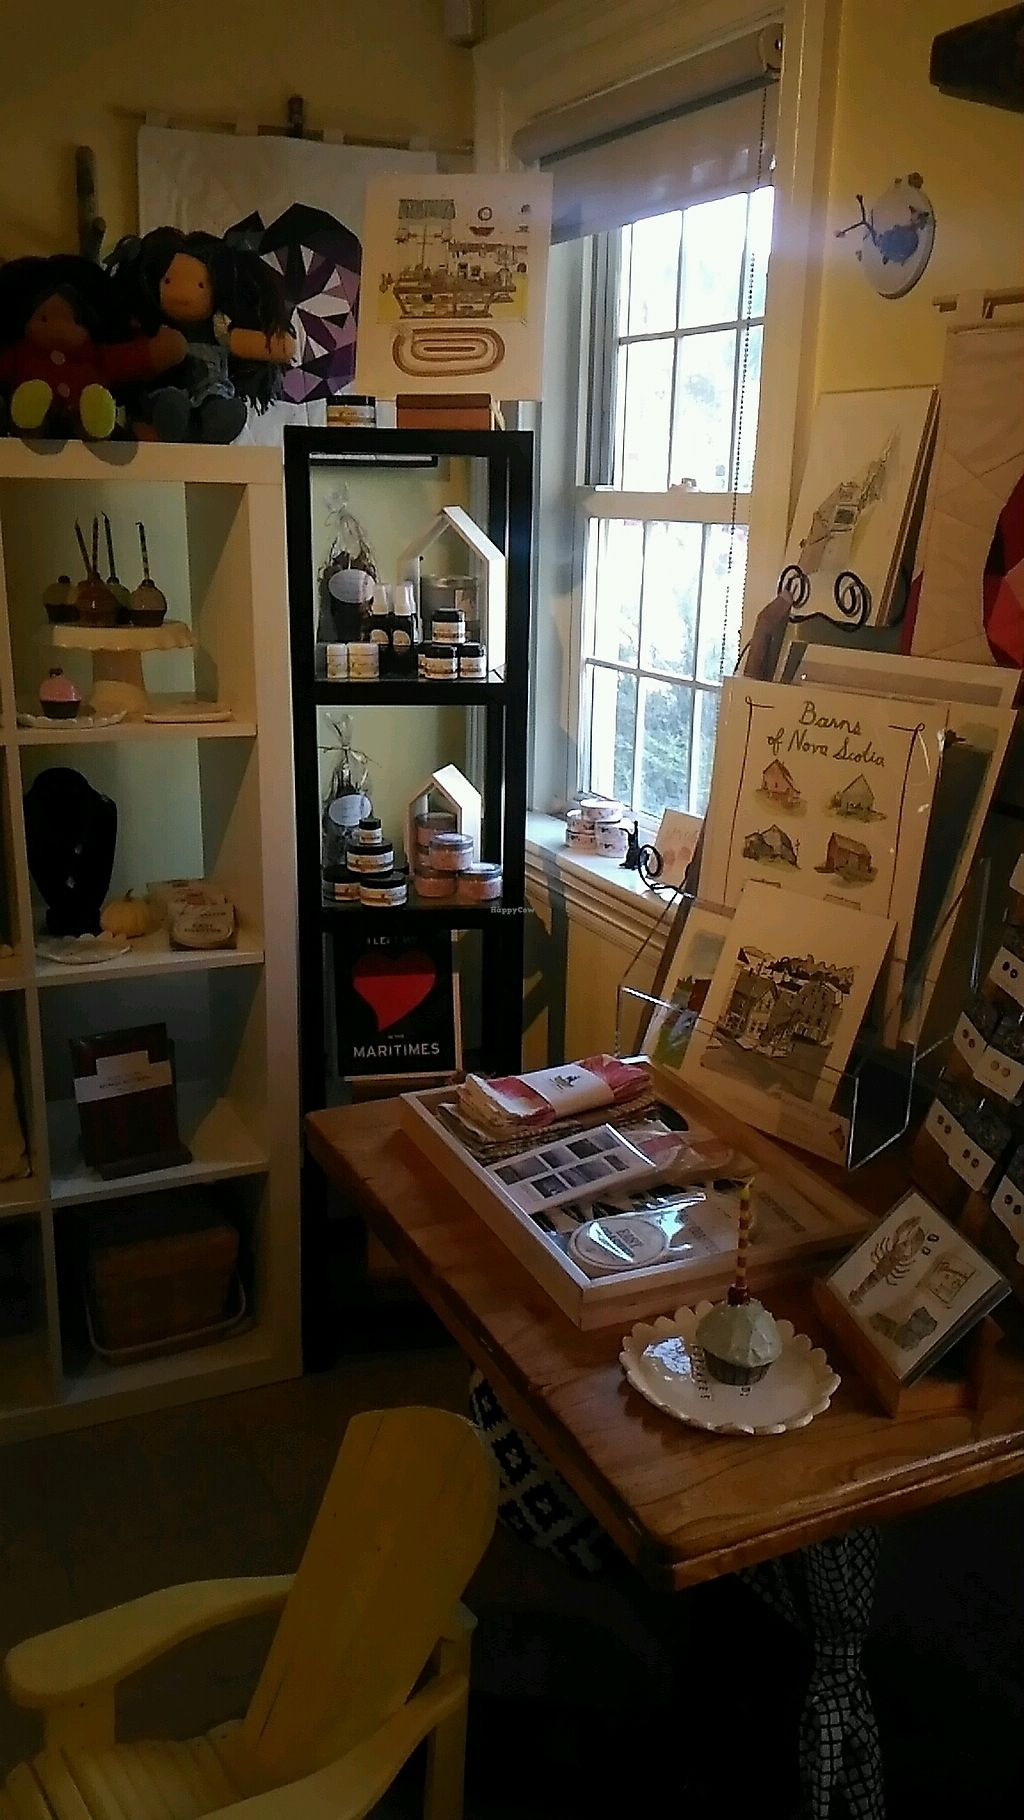 """Photo of The Biscuit Eater Cafe and Books  by <a href=""""/members/profile/QuothTheRaven"""">QuothTheRaven</a> <br/>local crafts <br/> November 12, 2017  - <a href='/contact/abuse/image/100711/324698'>Report</a>"""